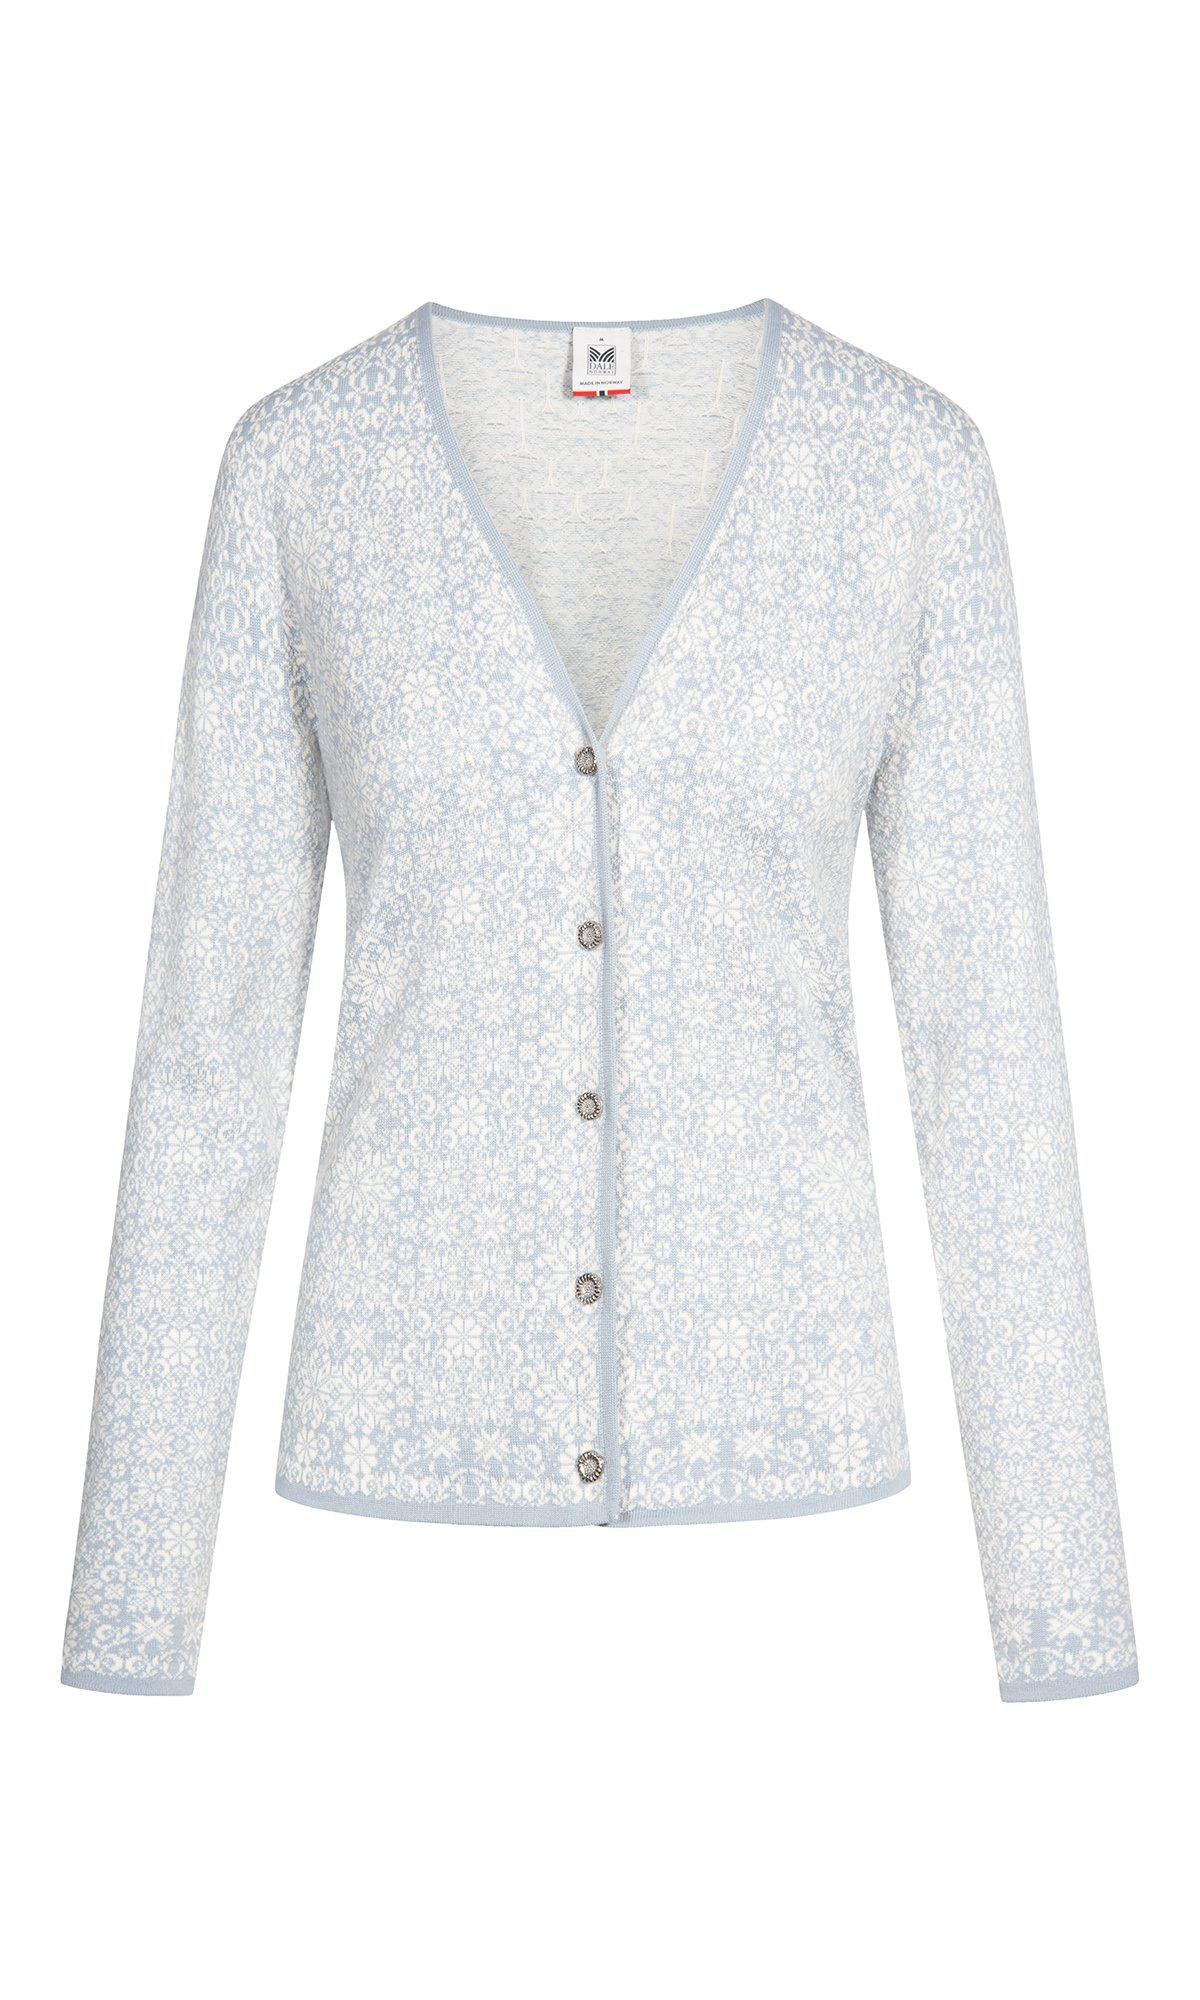 Dale Of Norway - Women's Otelie Jacket - White